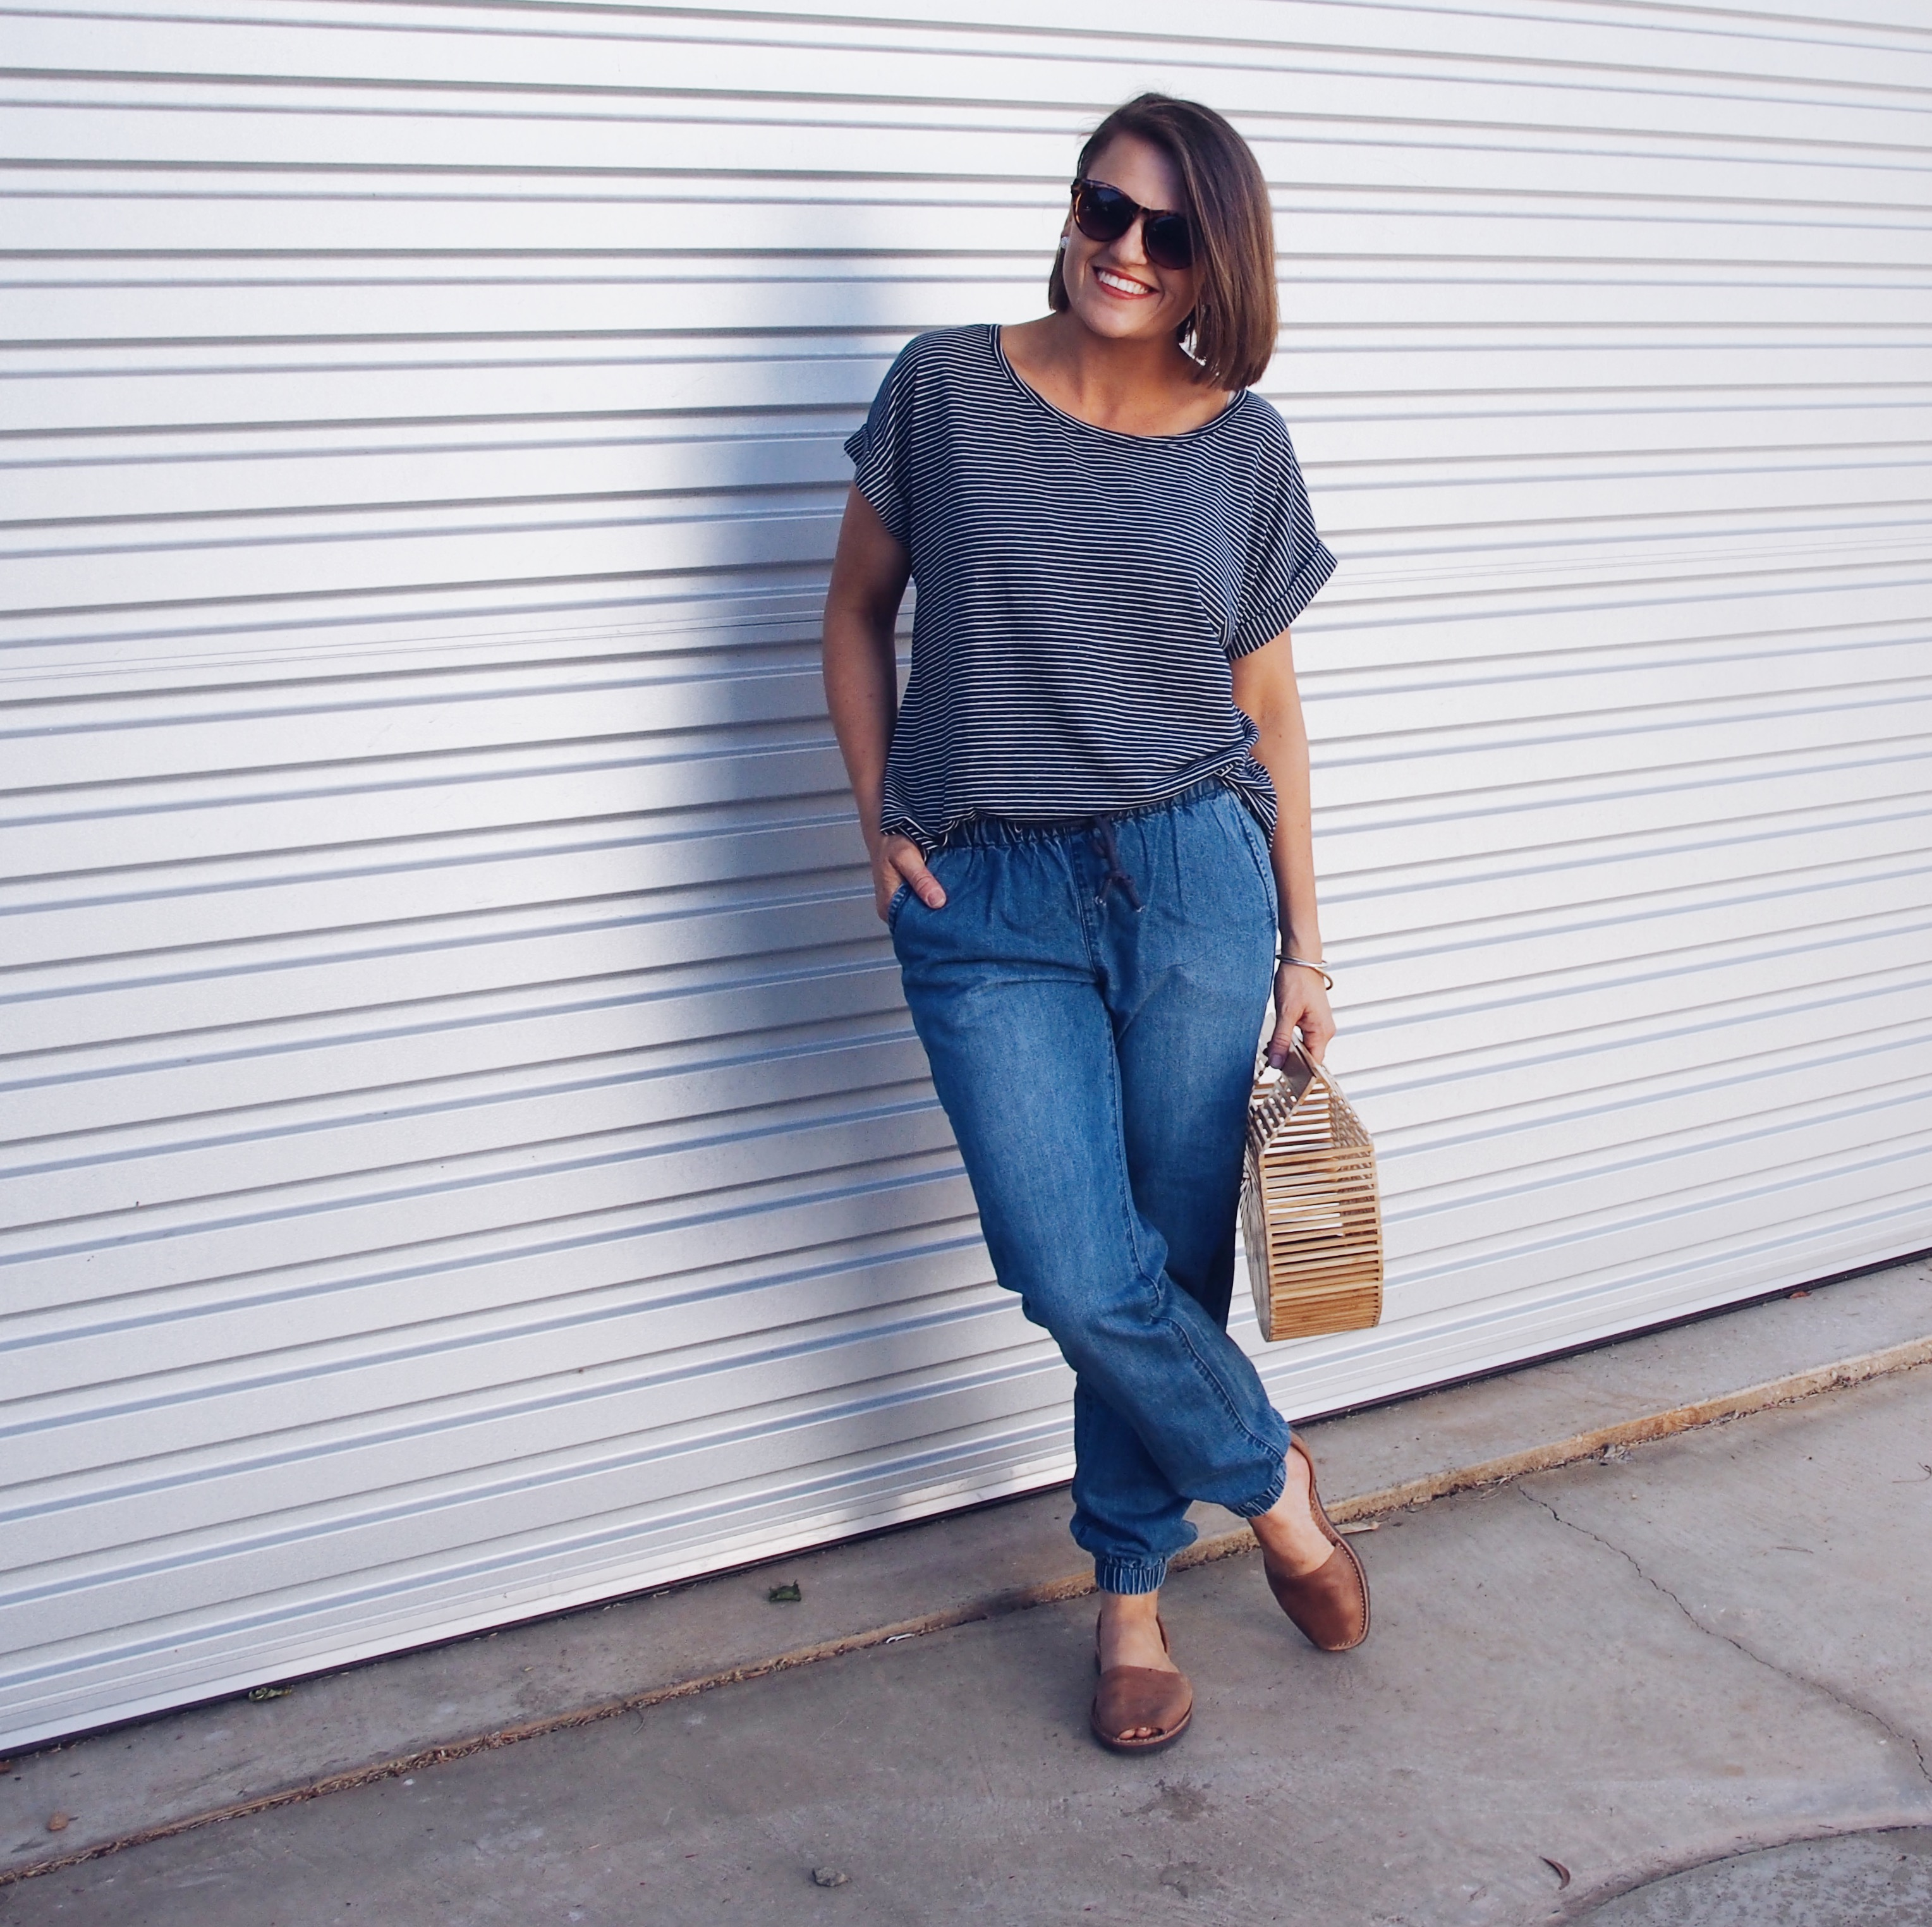 classic beach outing outfit with a stripe tee